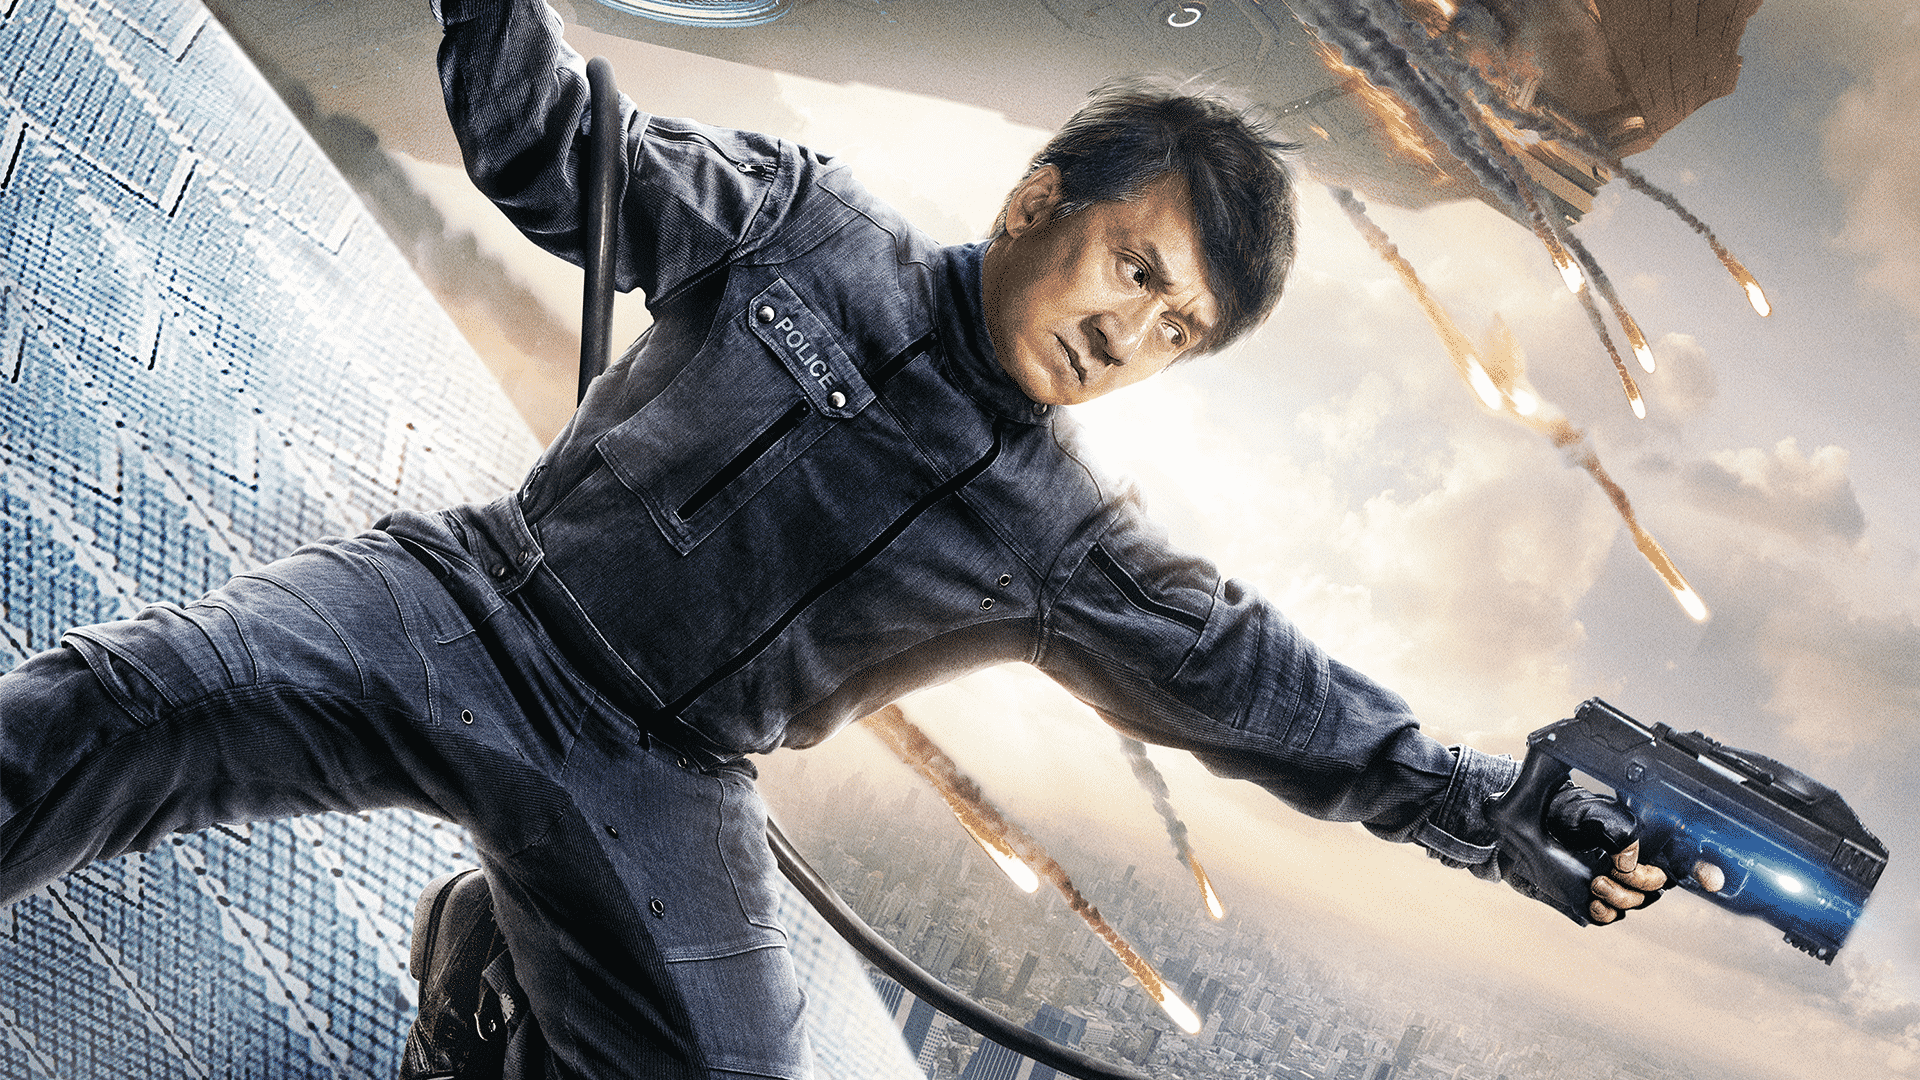 trailer k filmu bleeding steel